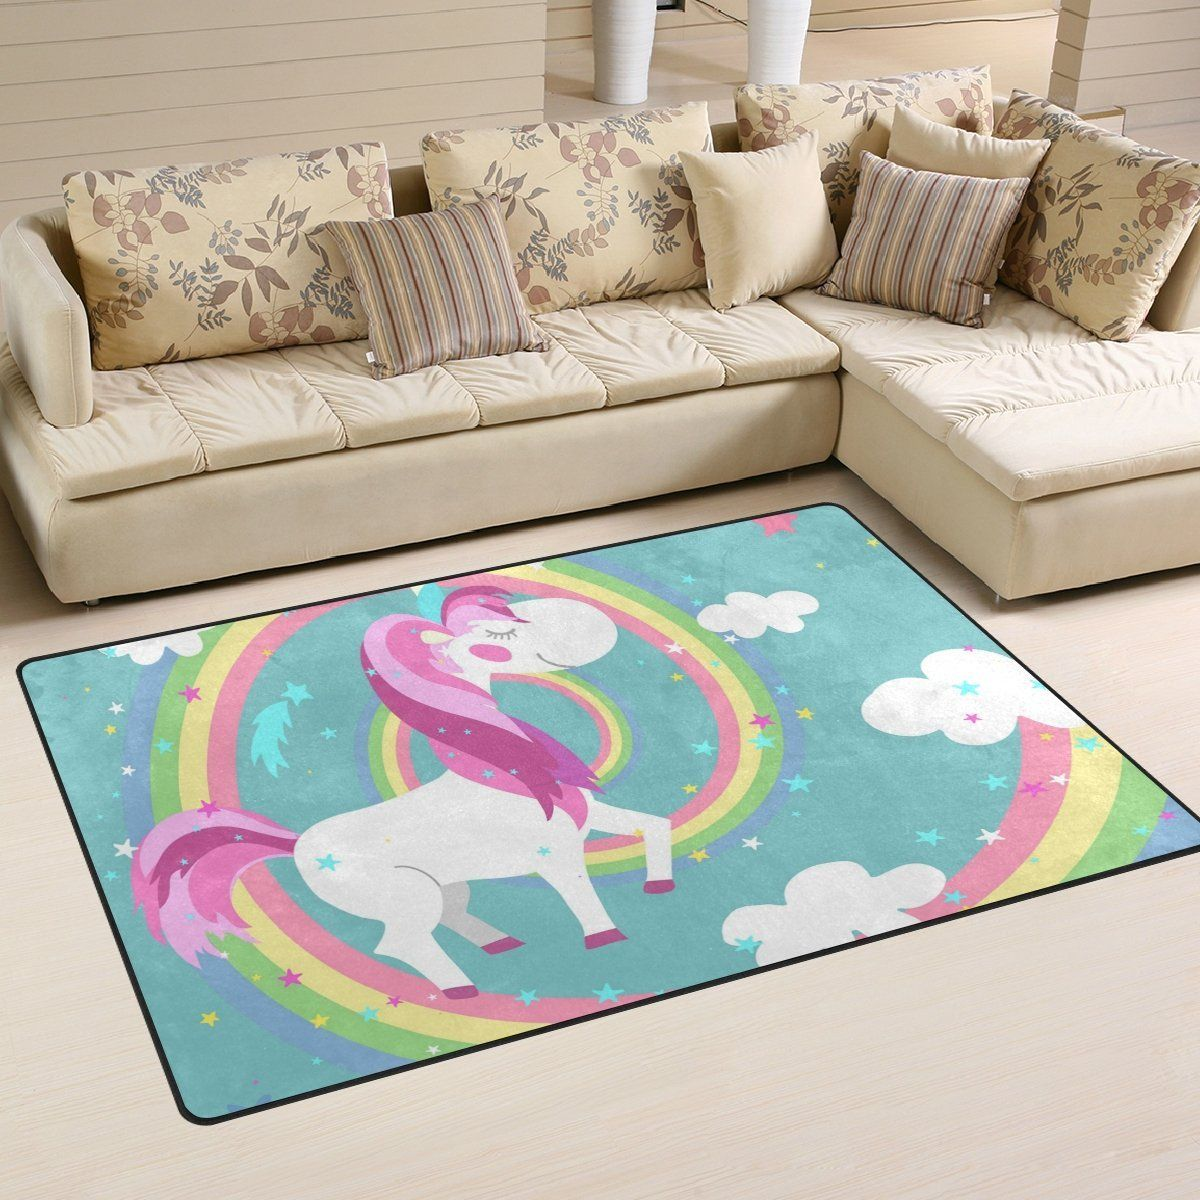 Amazon Teppiche Sale Unicorn Einhorn Teppich Babies Room Kids Rugs Kitchen